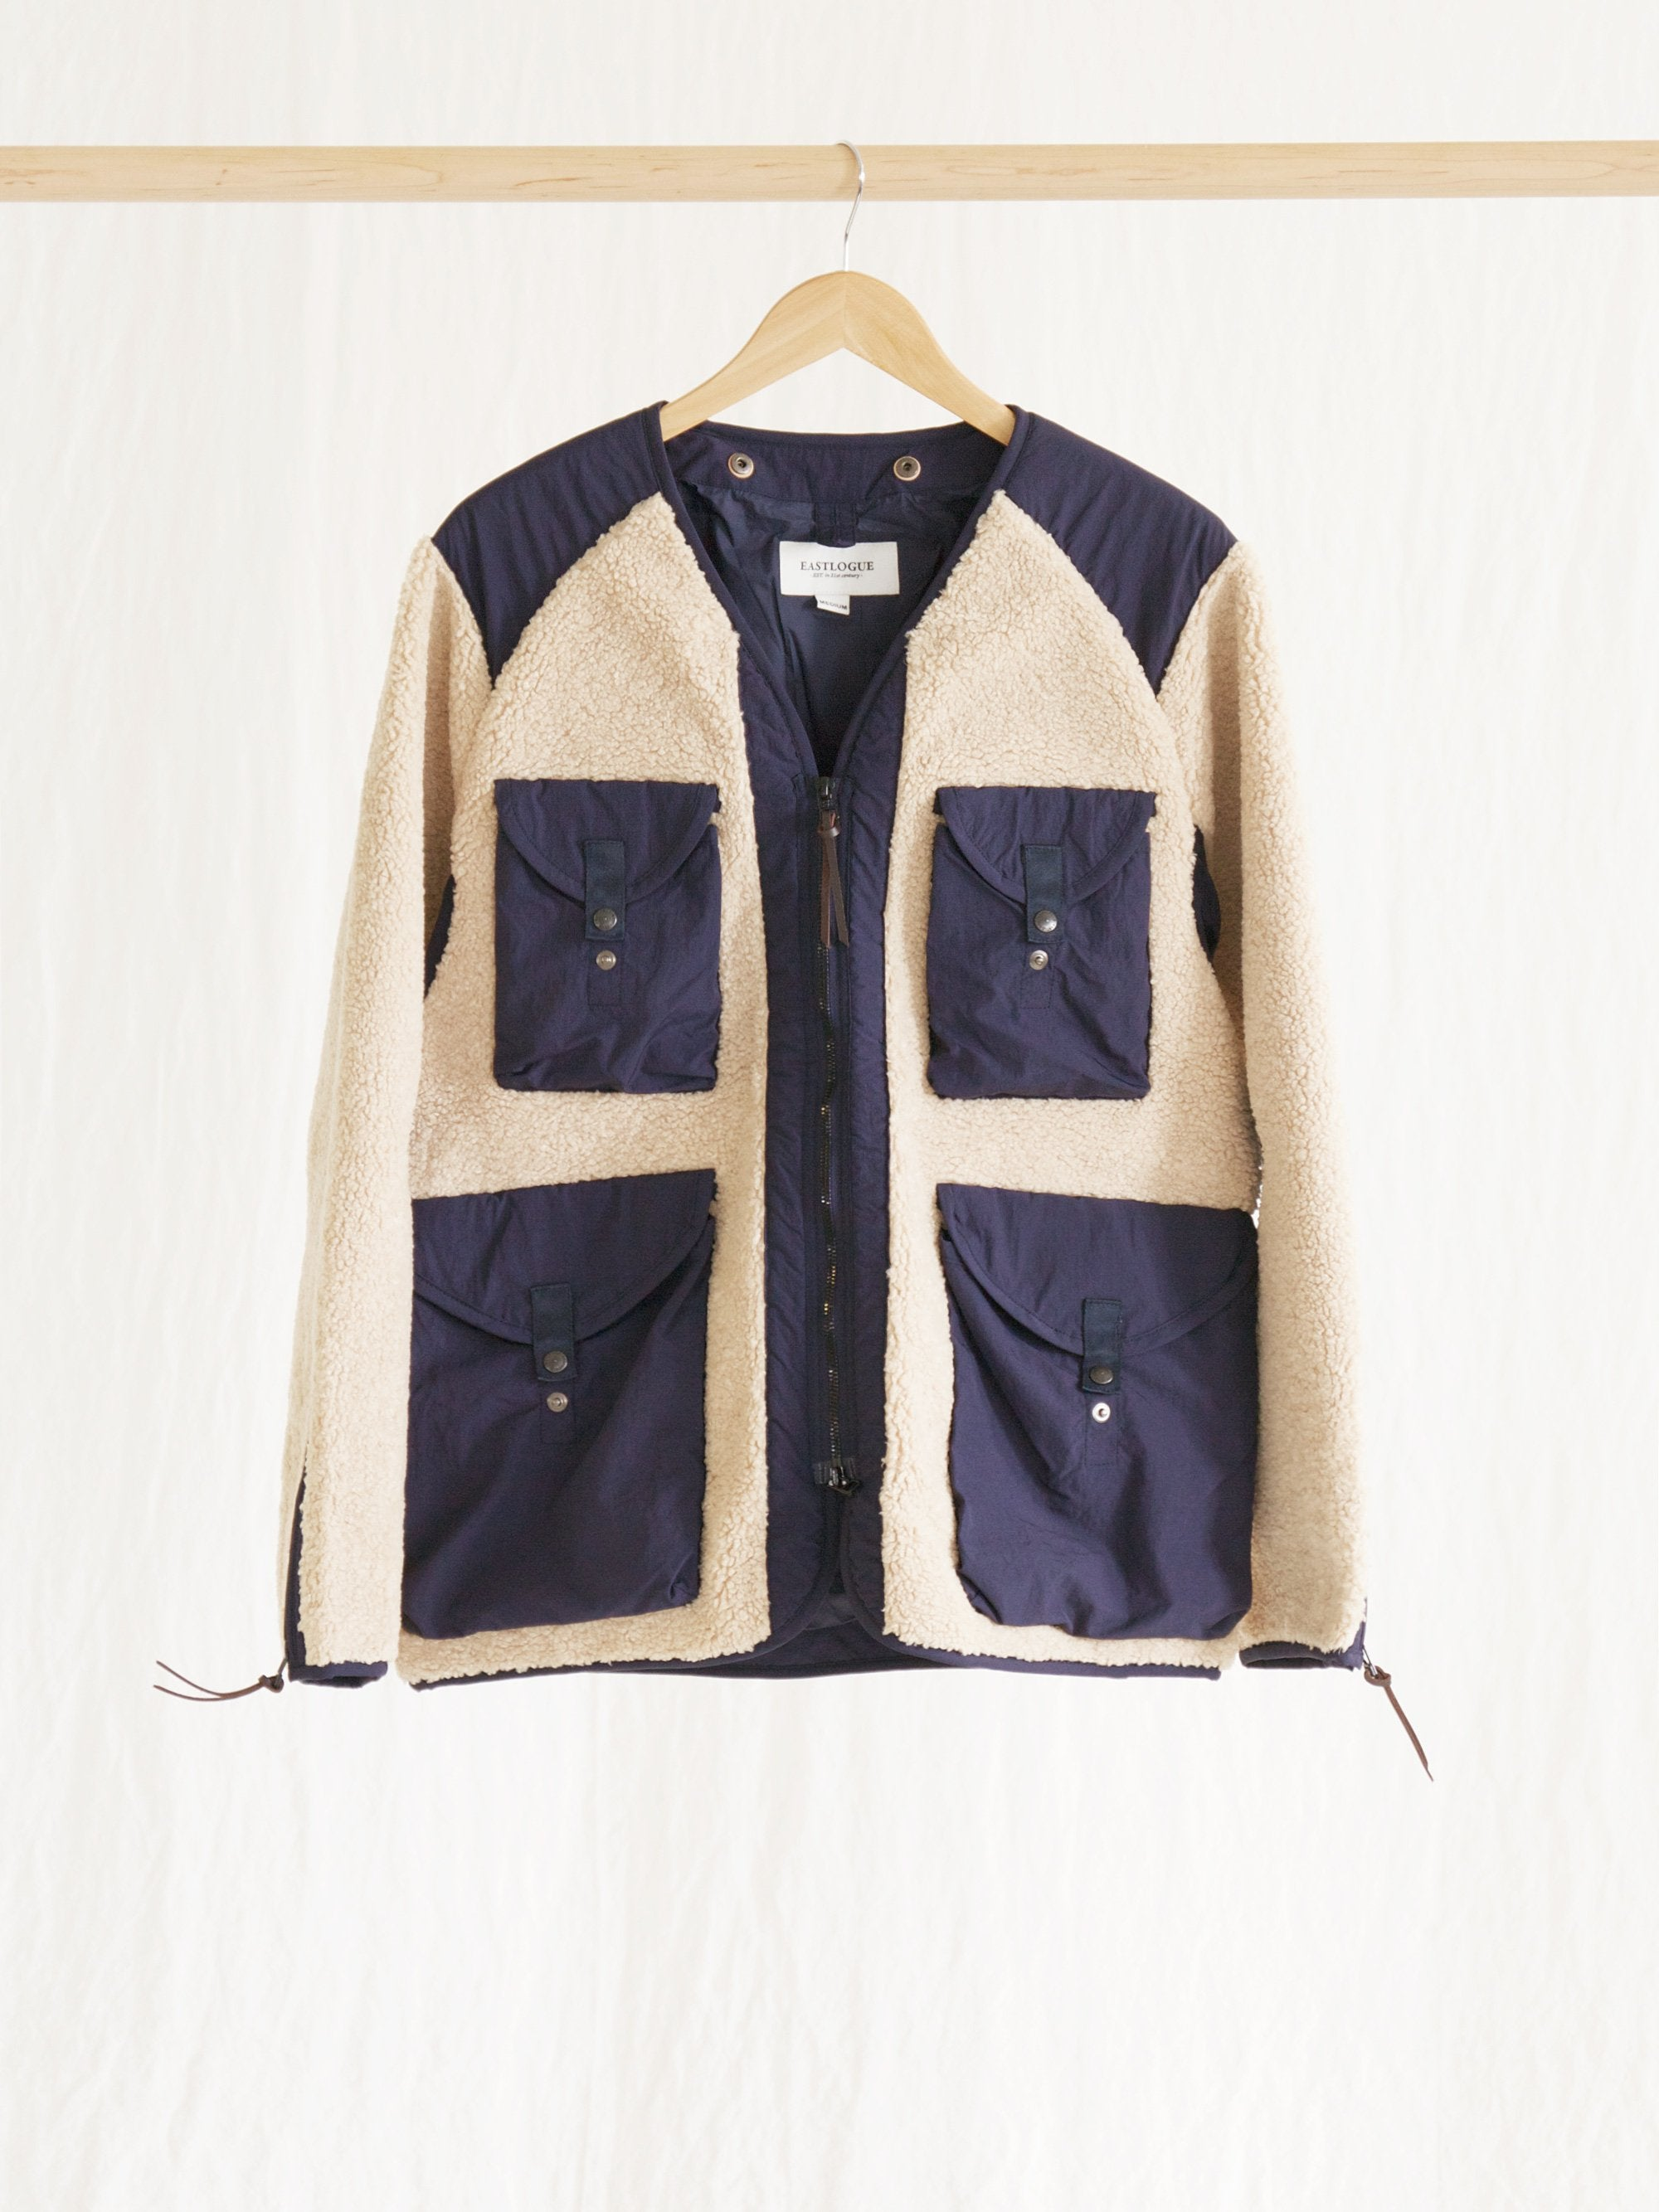 Namu Shop - Eastlogue Traveler Jacket